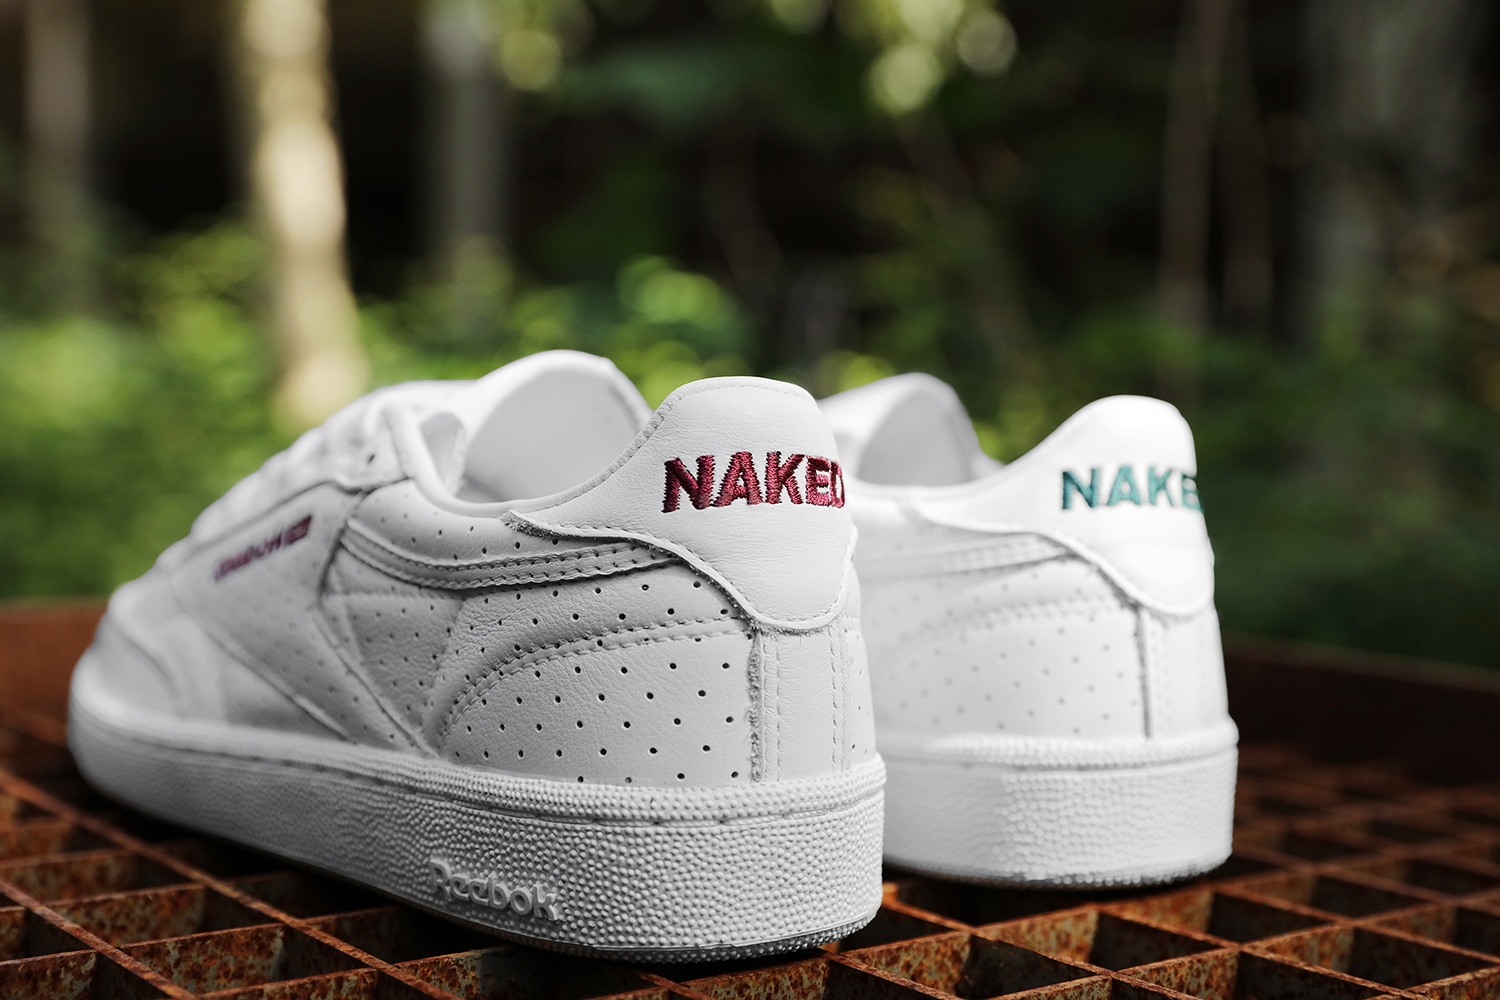 reebok-naked-90s-collaboration-08